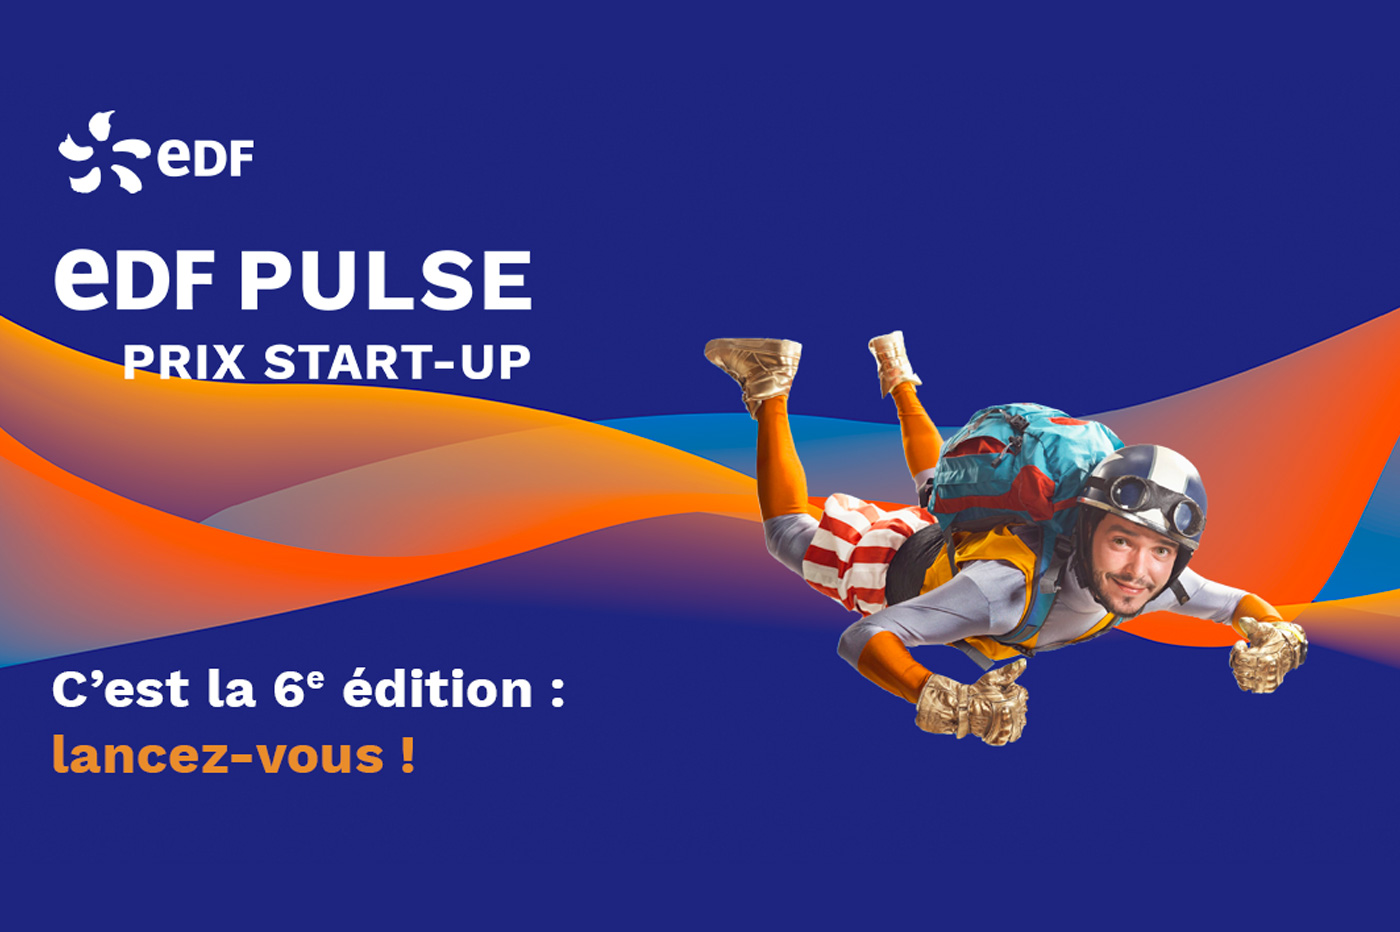 Concours startups EDF Pulse